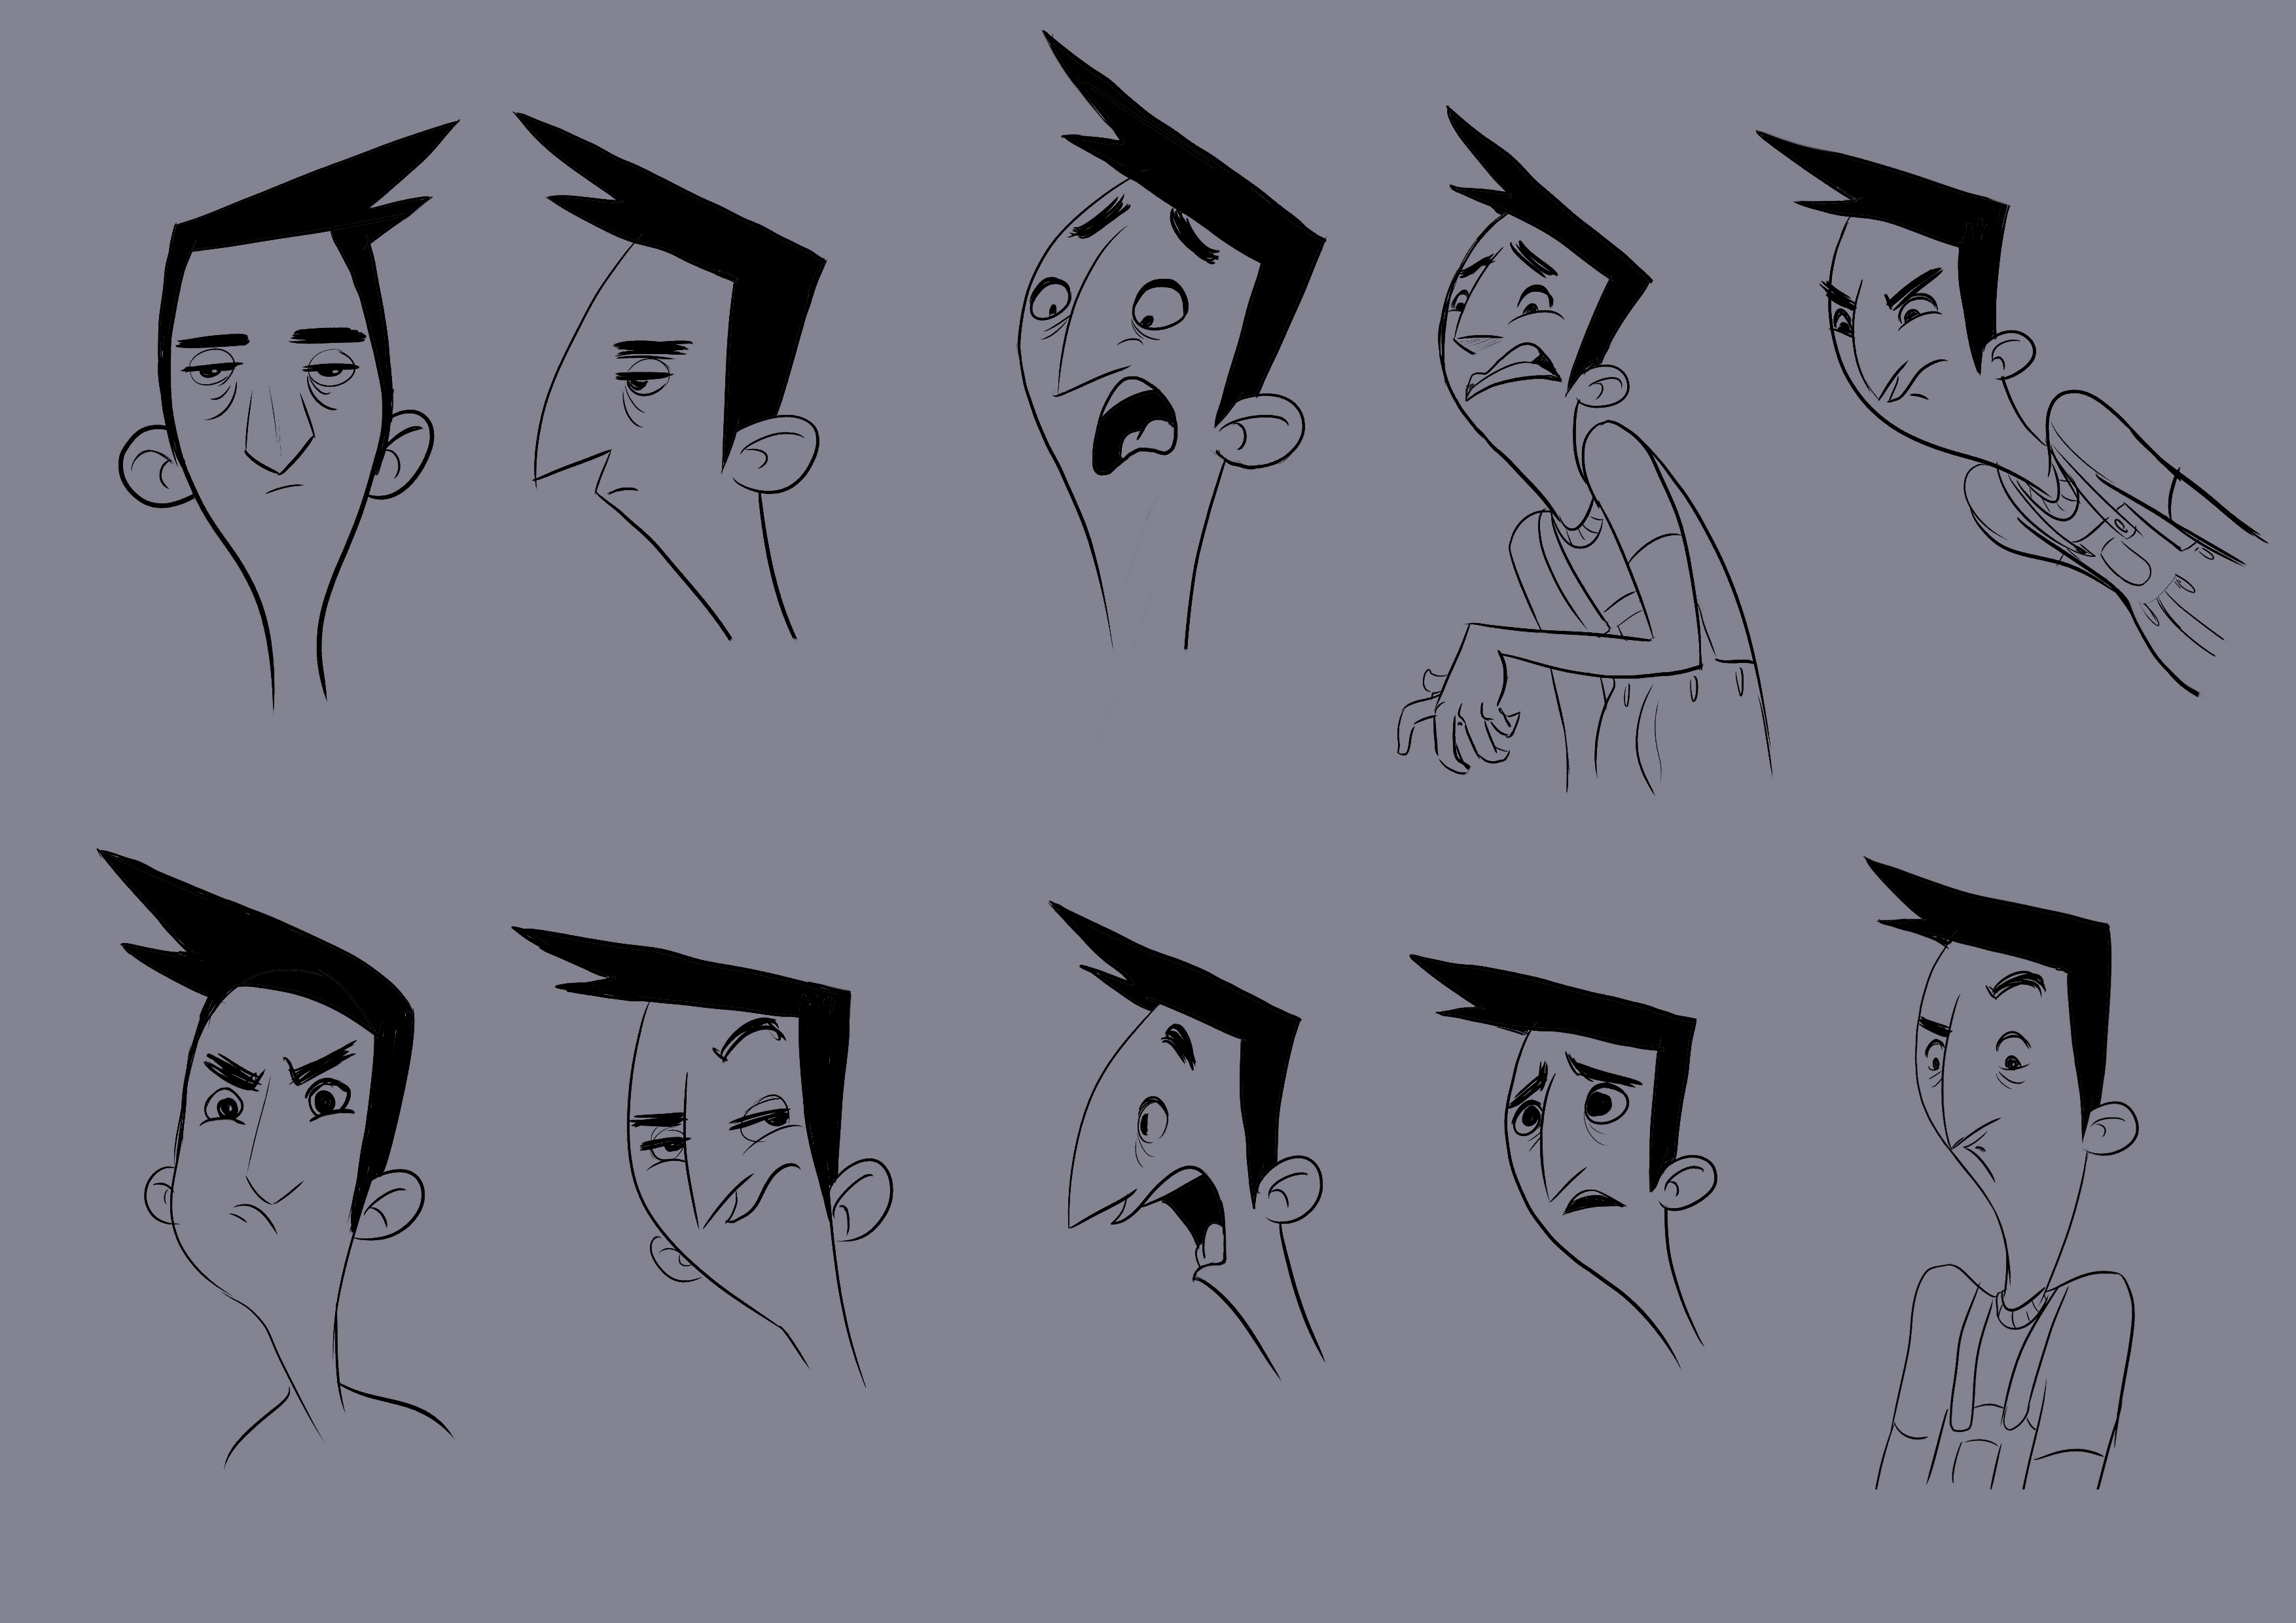 Karl_expressions